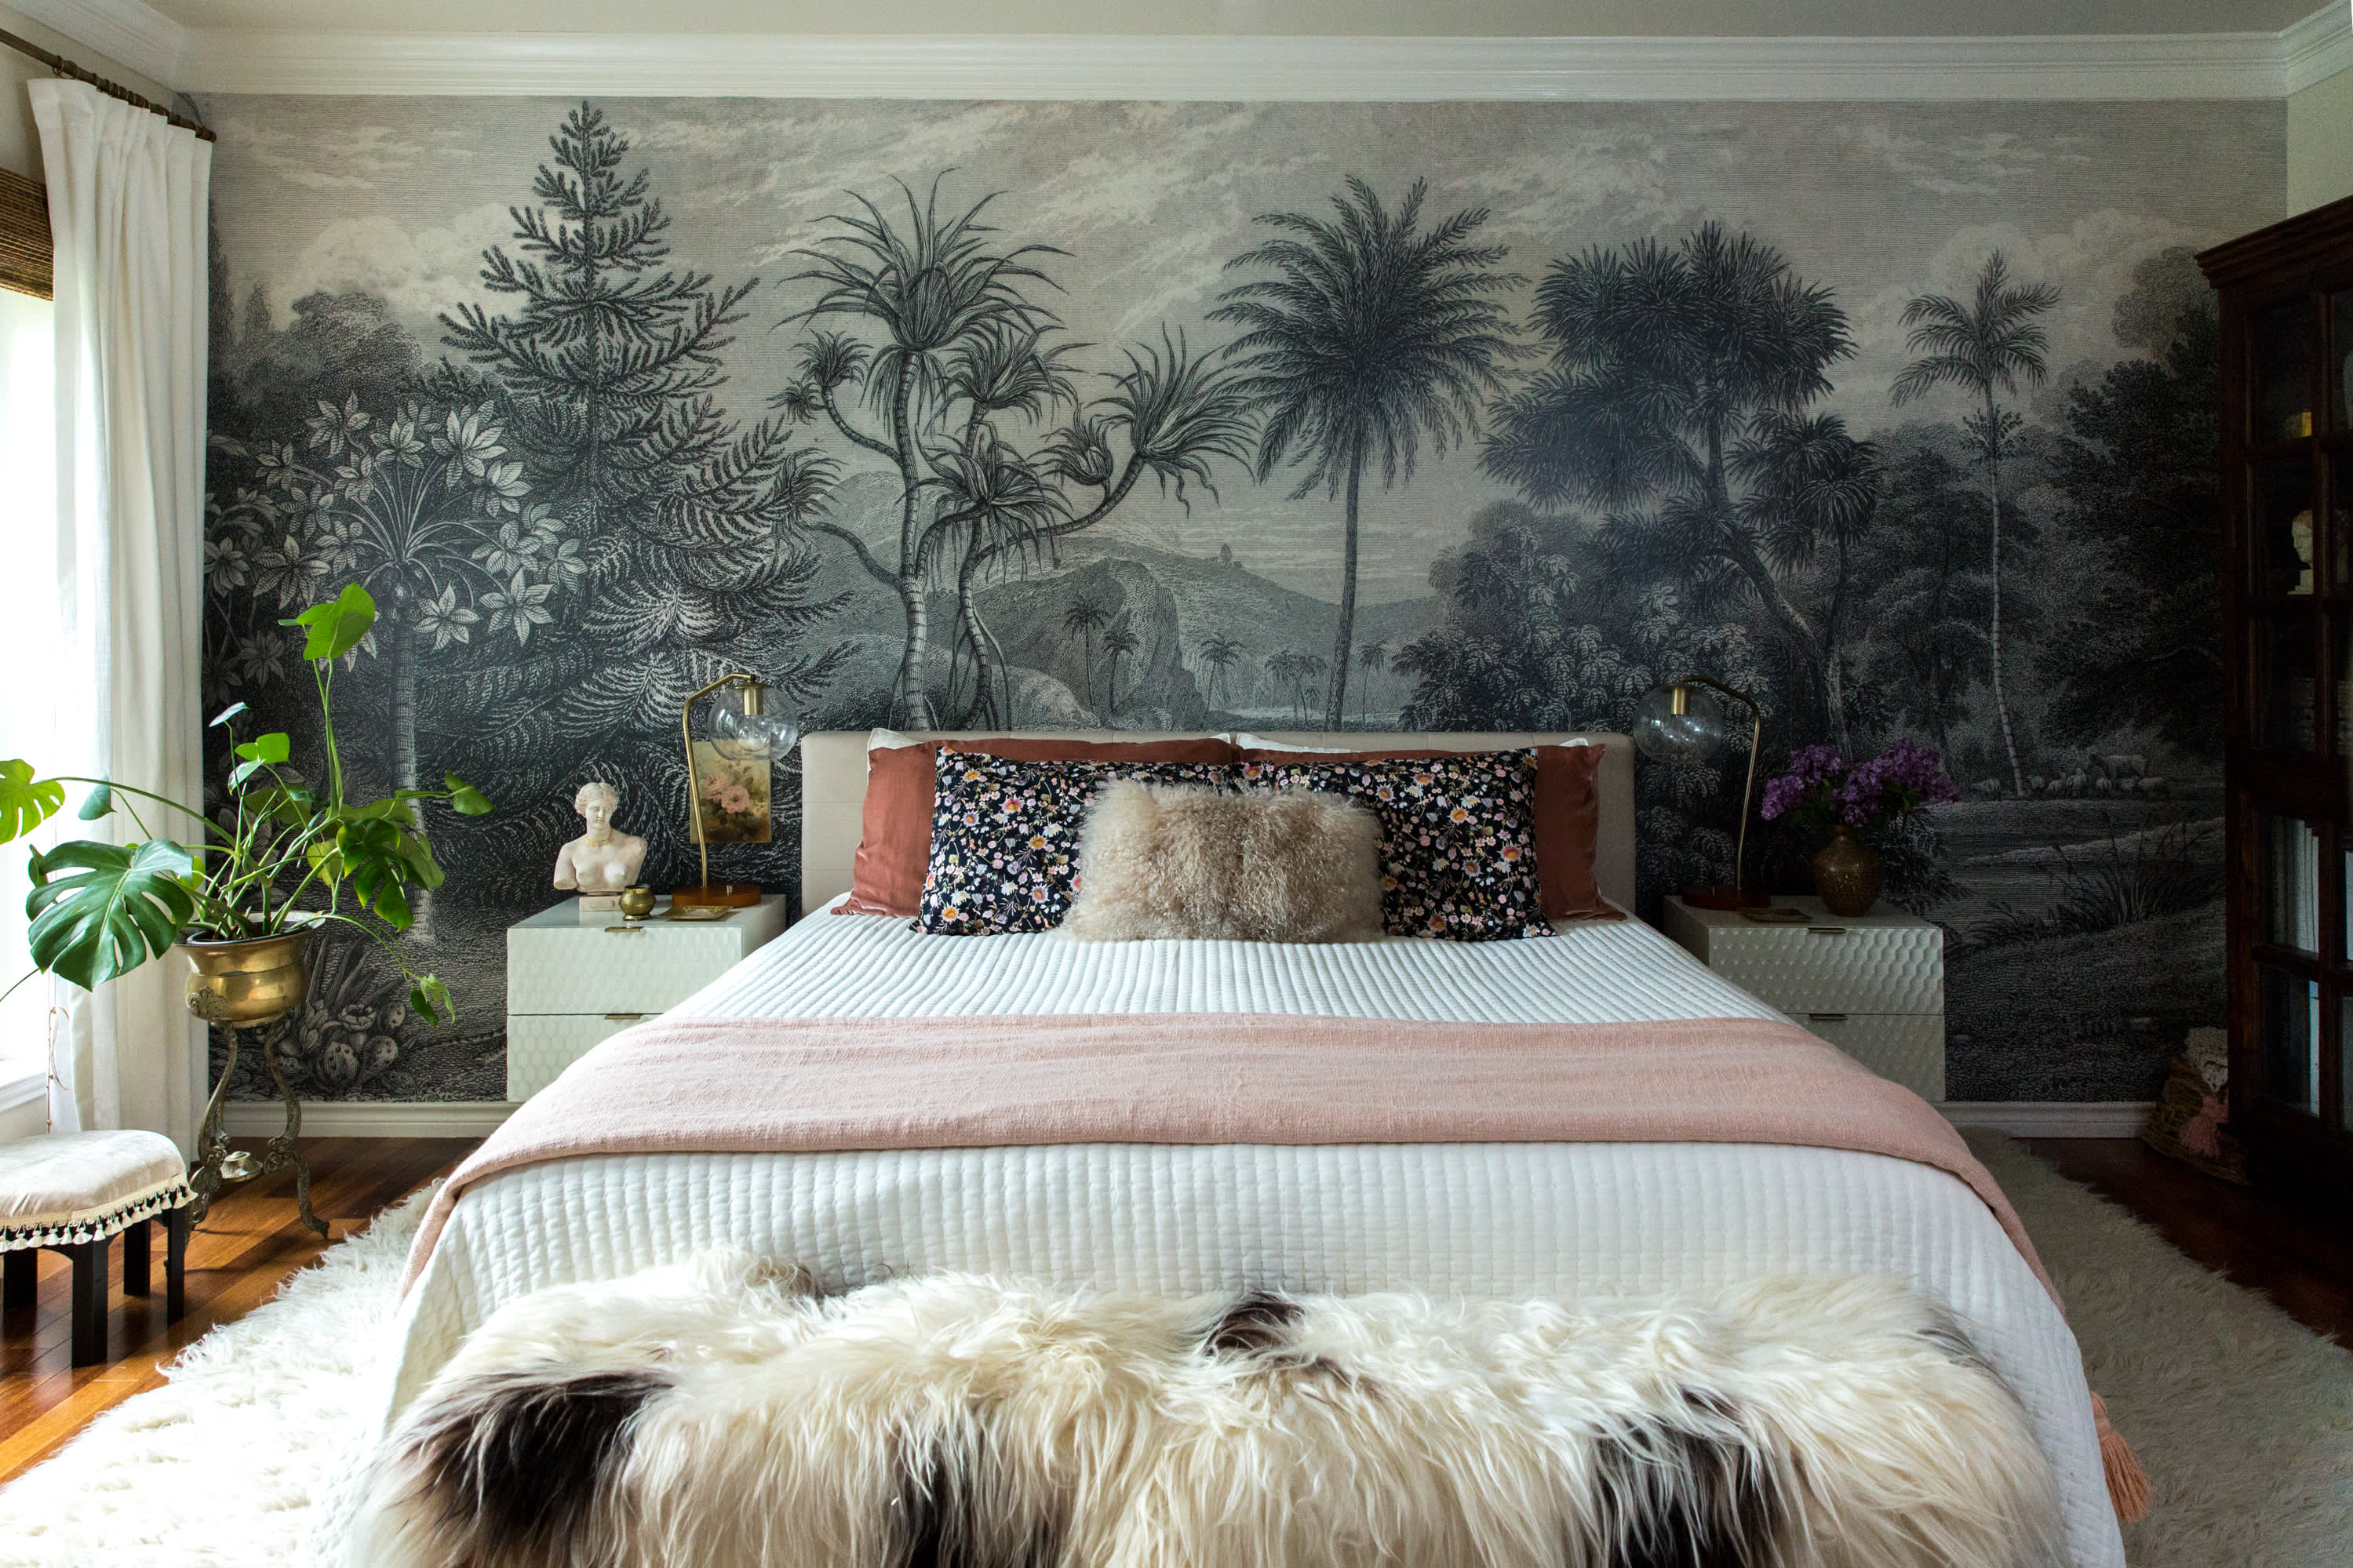 These Gorgeous Rooms Were The Most Pinned Images on Apartment Therapy This Week